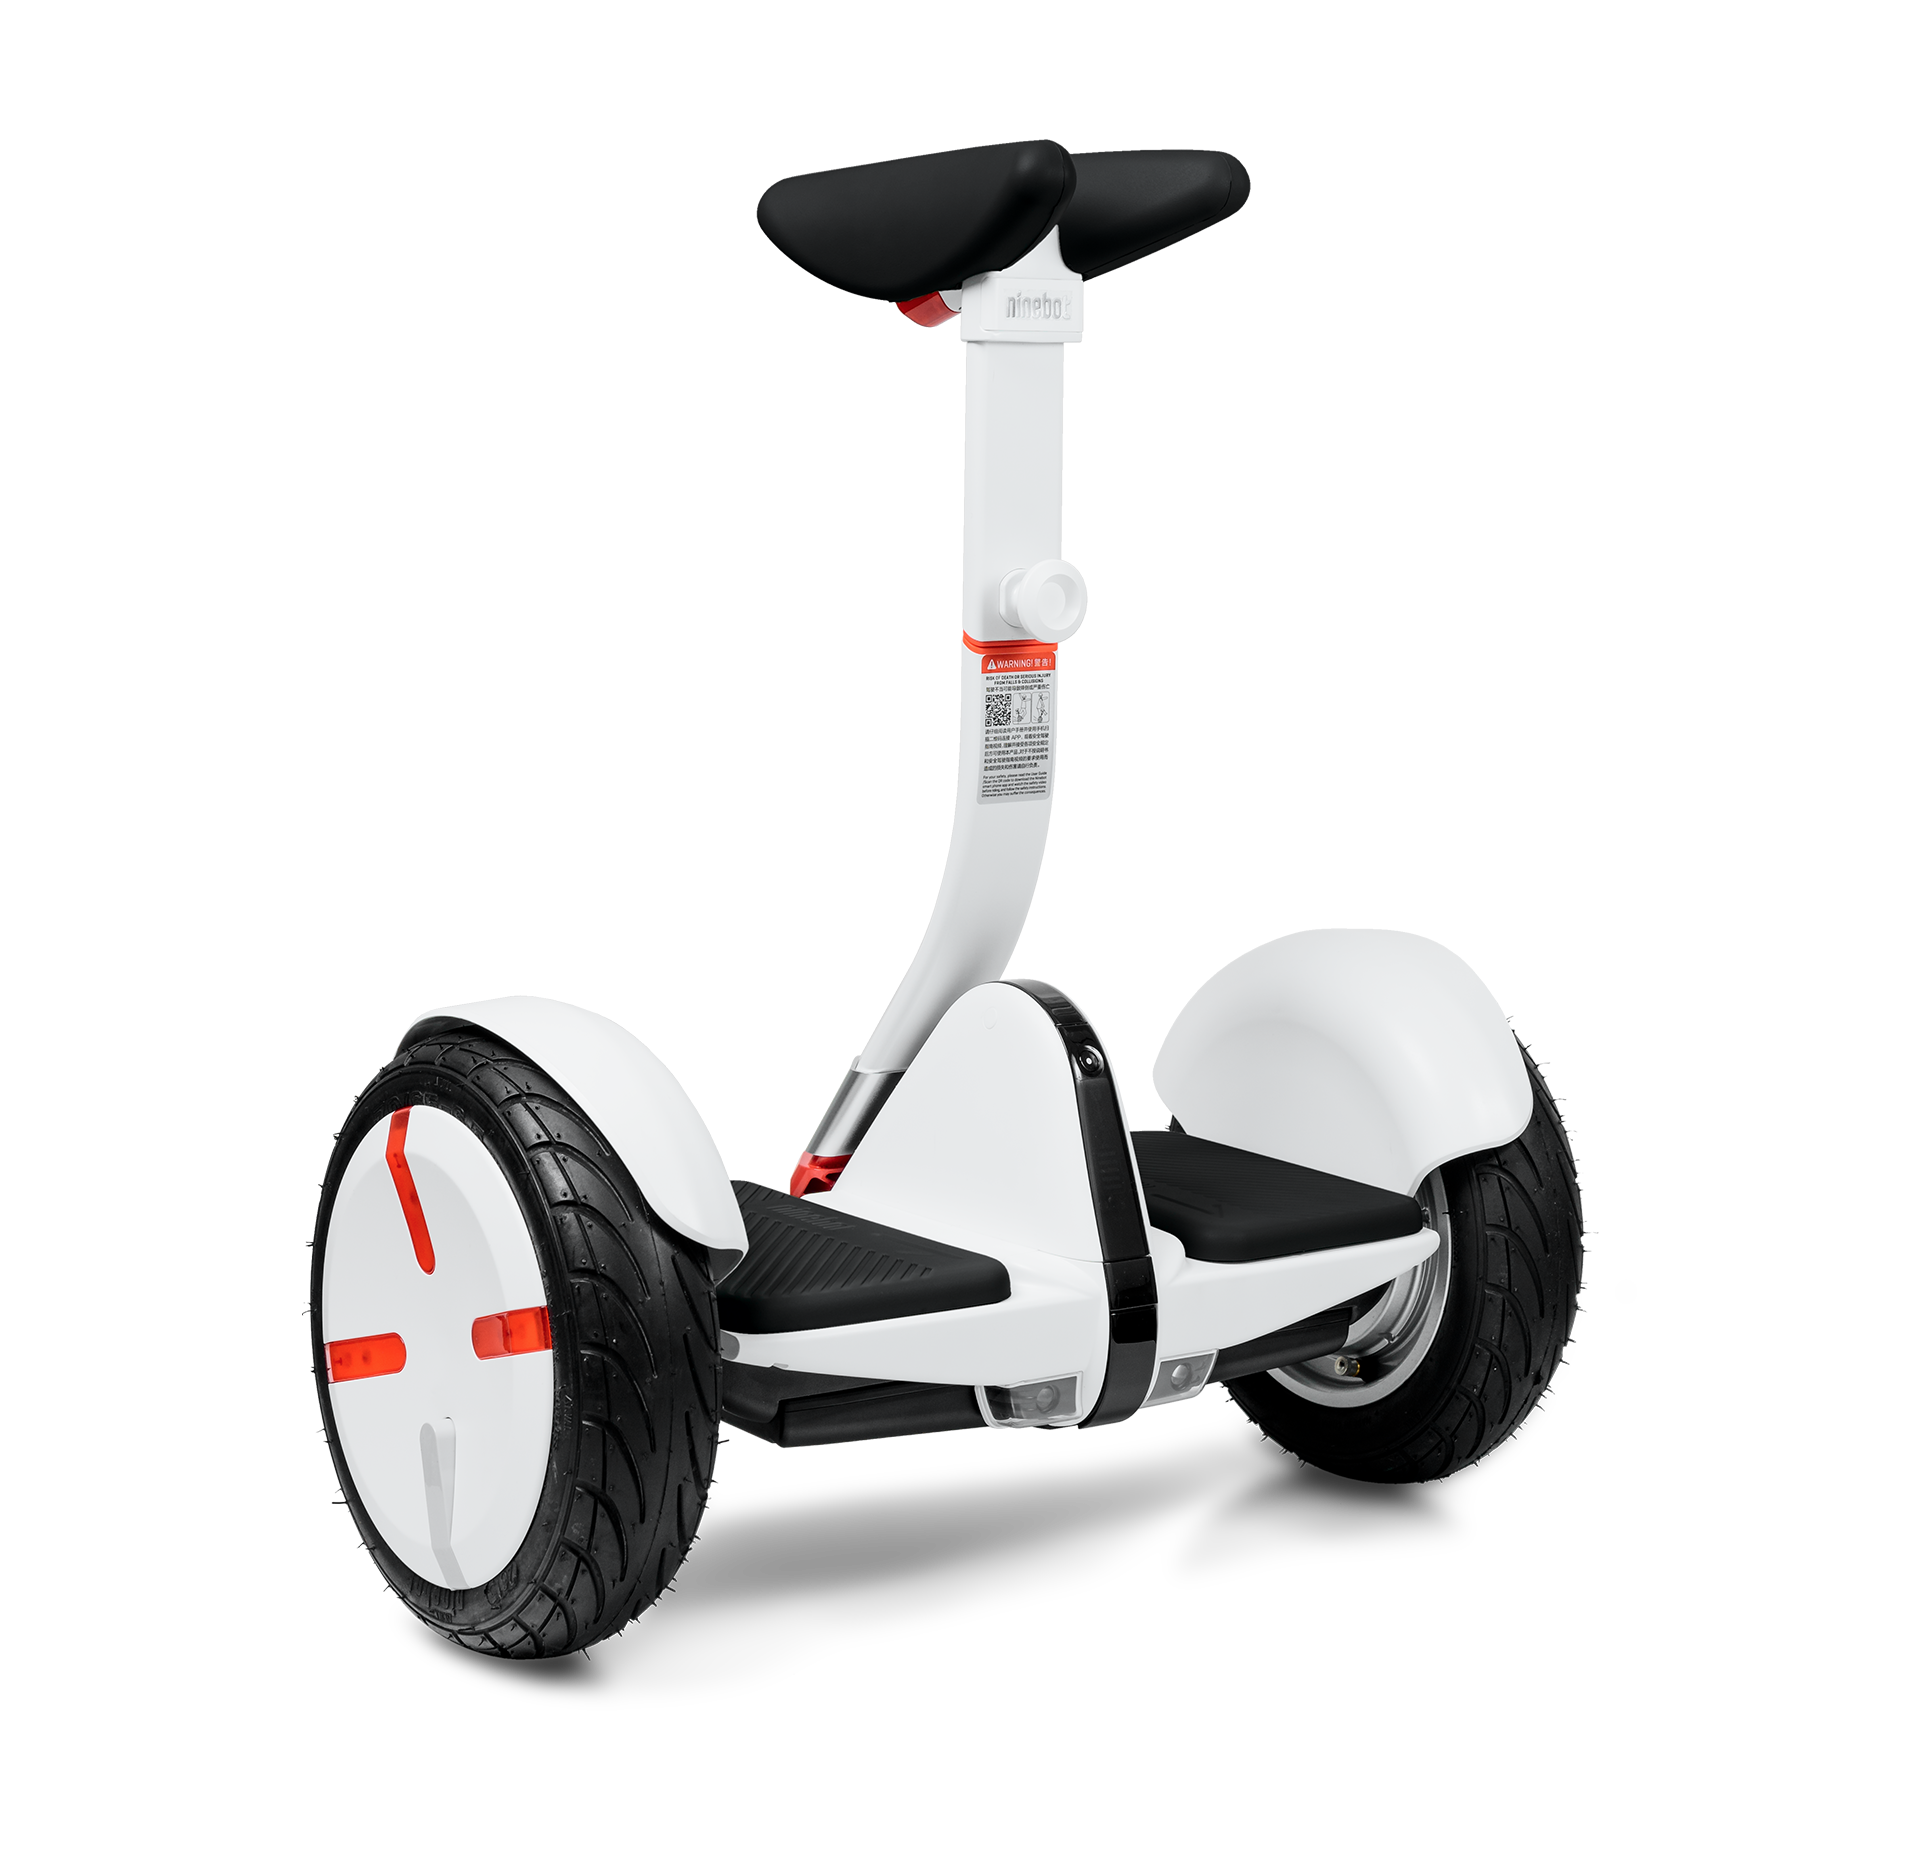 Ninebot Segway N3M320 mini PRO 2-wheel Self Balancing Scooter - WHITE